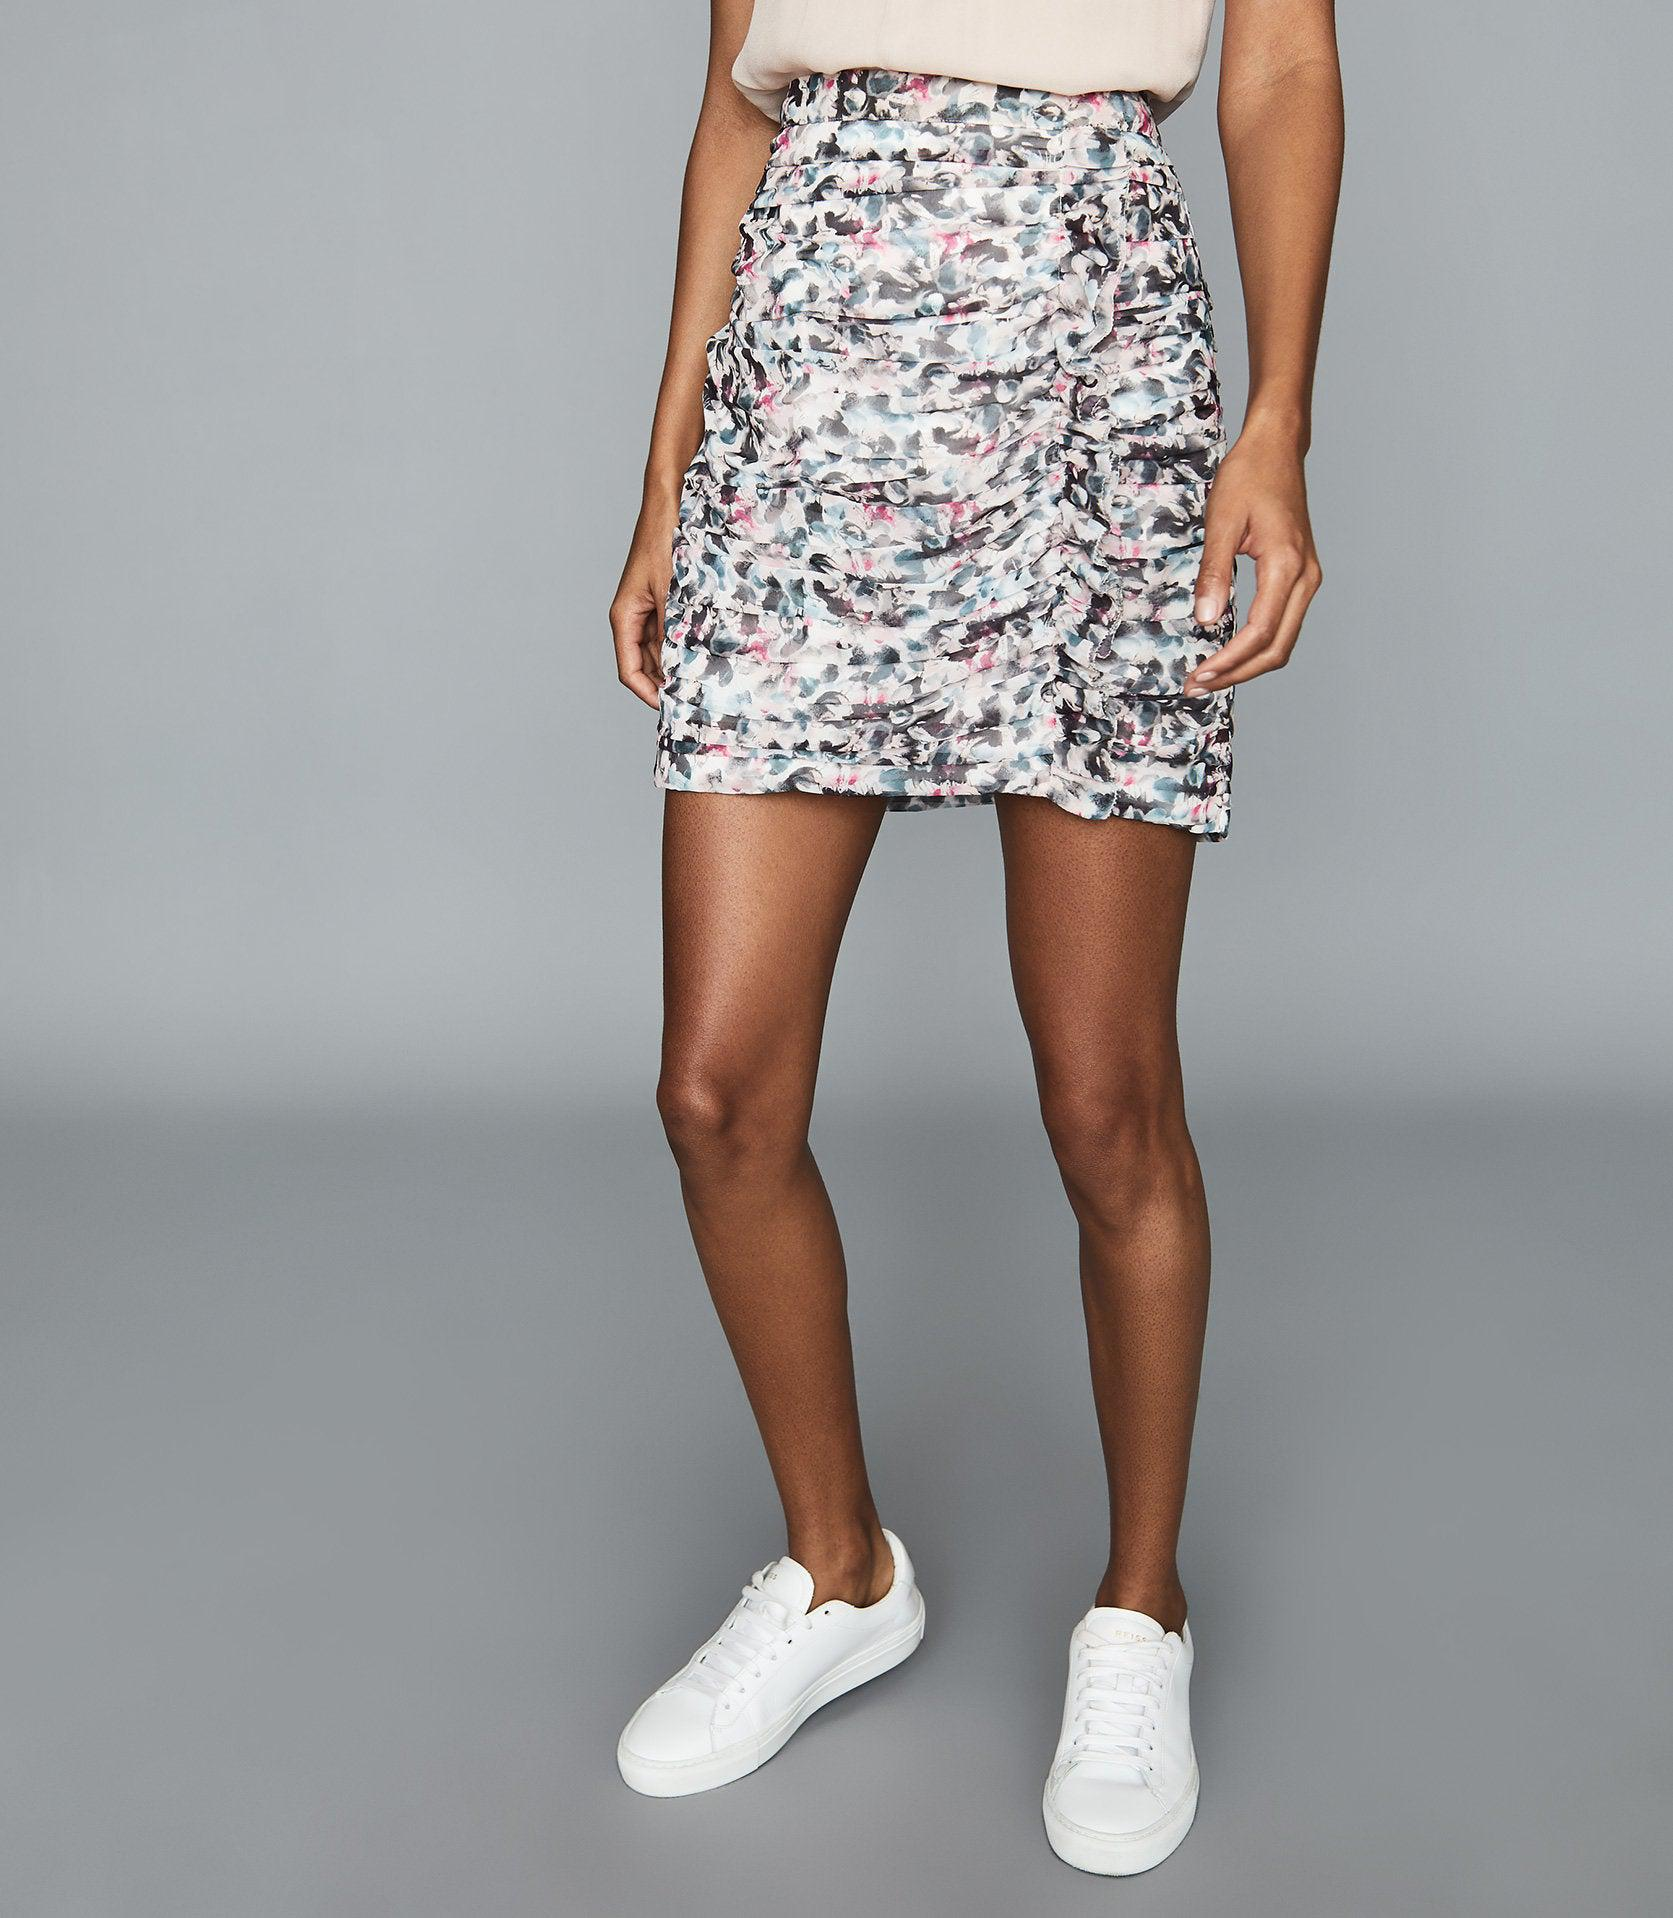 LUCIELLE - FLORAL PRINT RUCHED MINI SKIRT 1